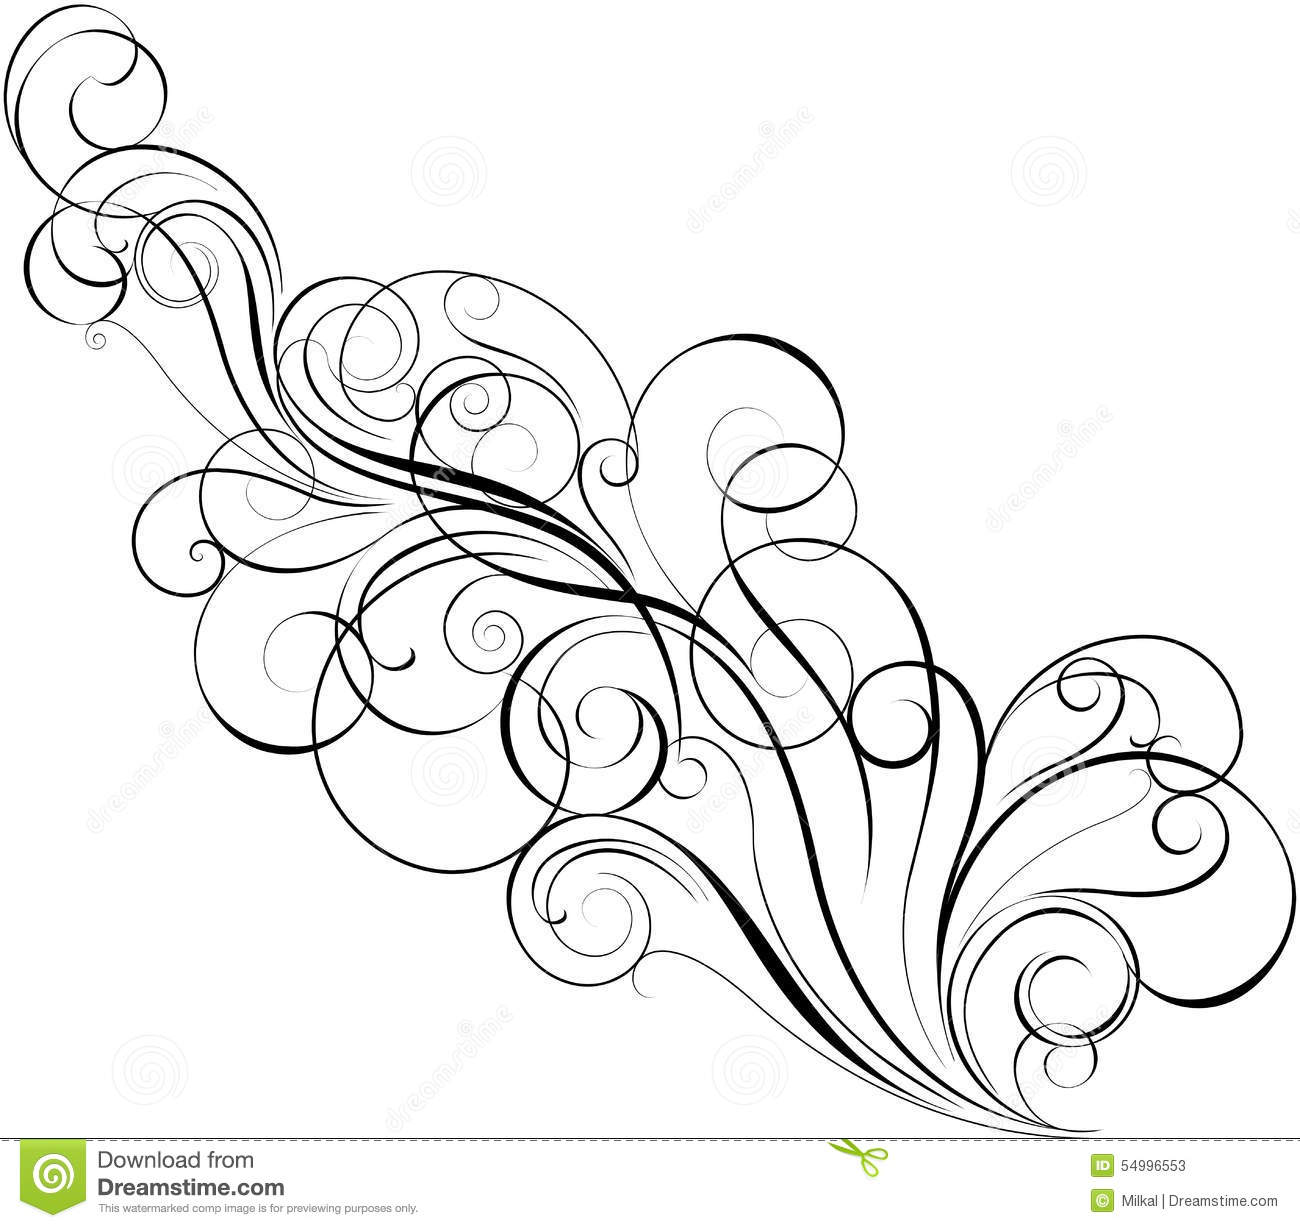 Diagonal Swirl Design Stock Vector Illustration Of Ancient 54996553